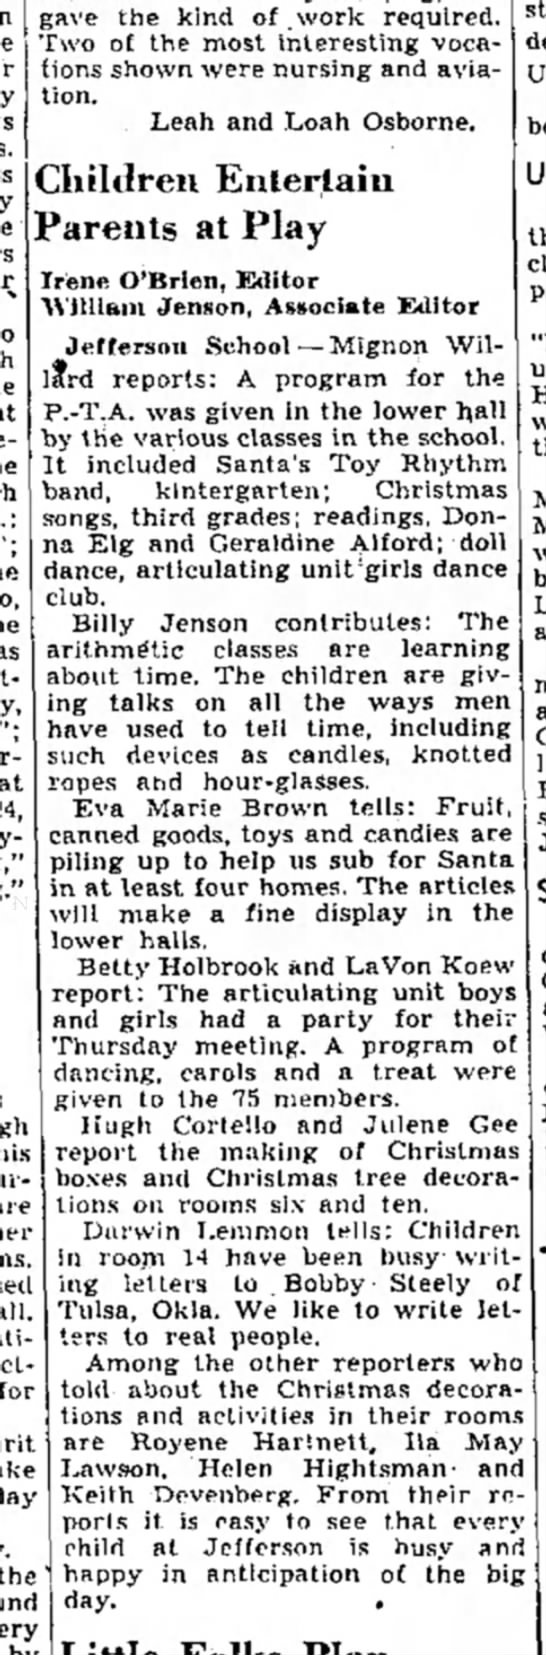 Dec 16, 1939 - Salt Lake Tribune - Saturday - fo th gave the kind of .work required. Two of...